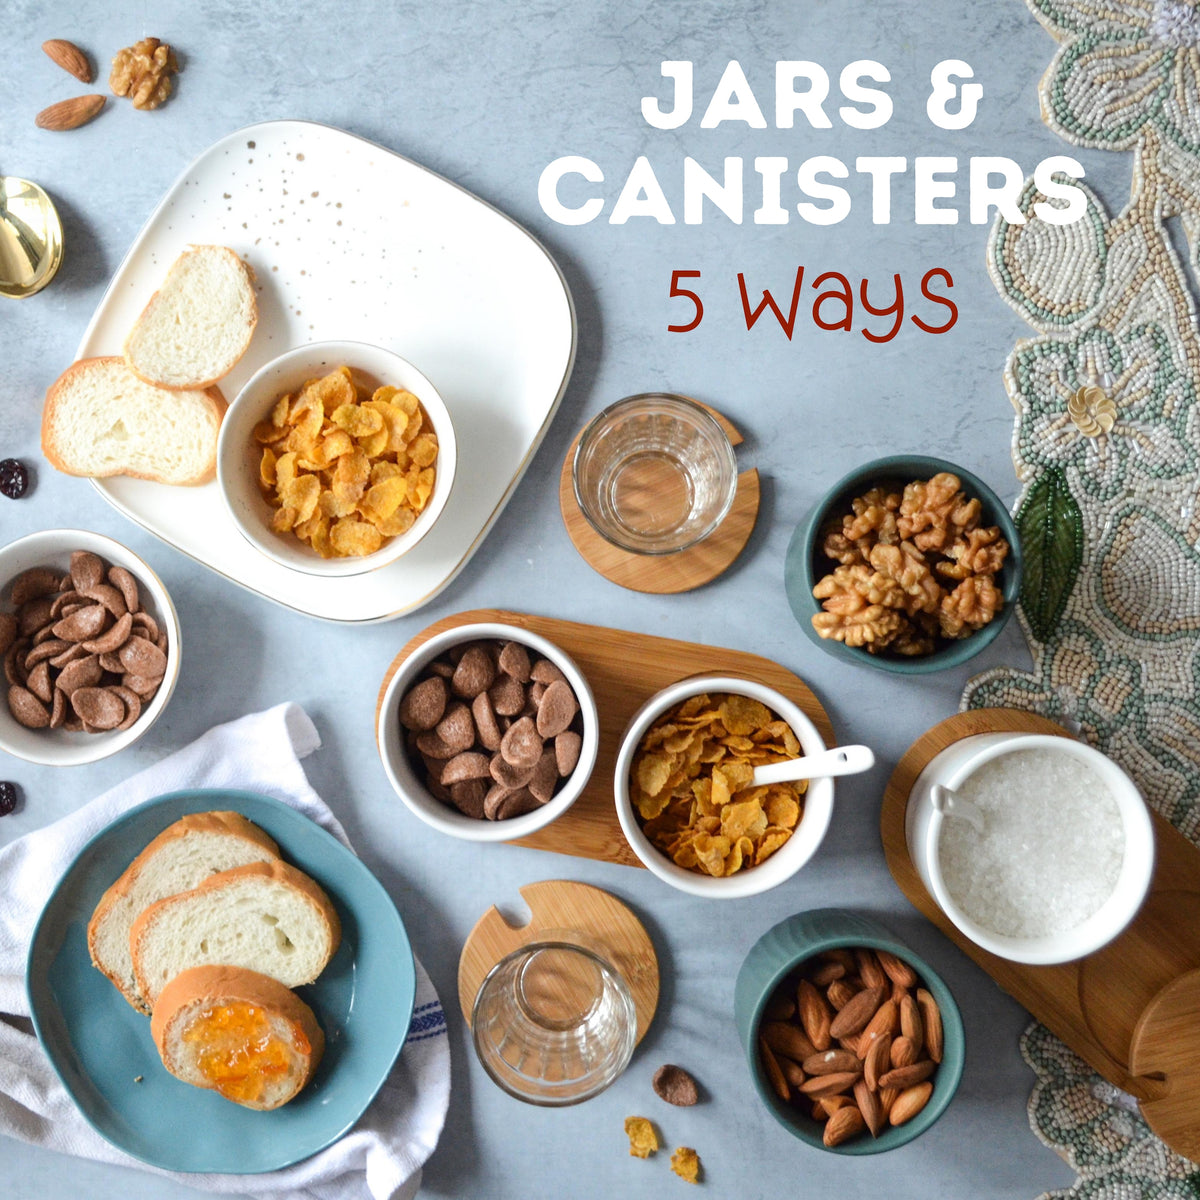 Jars & Canisters: 5 Ways